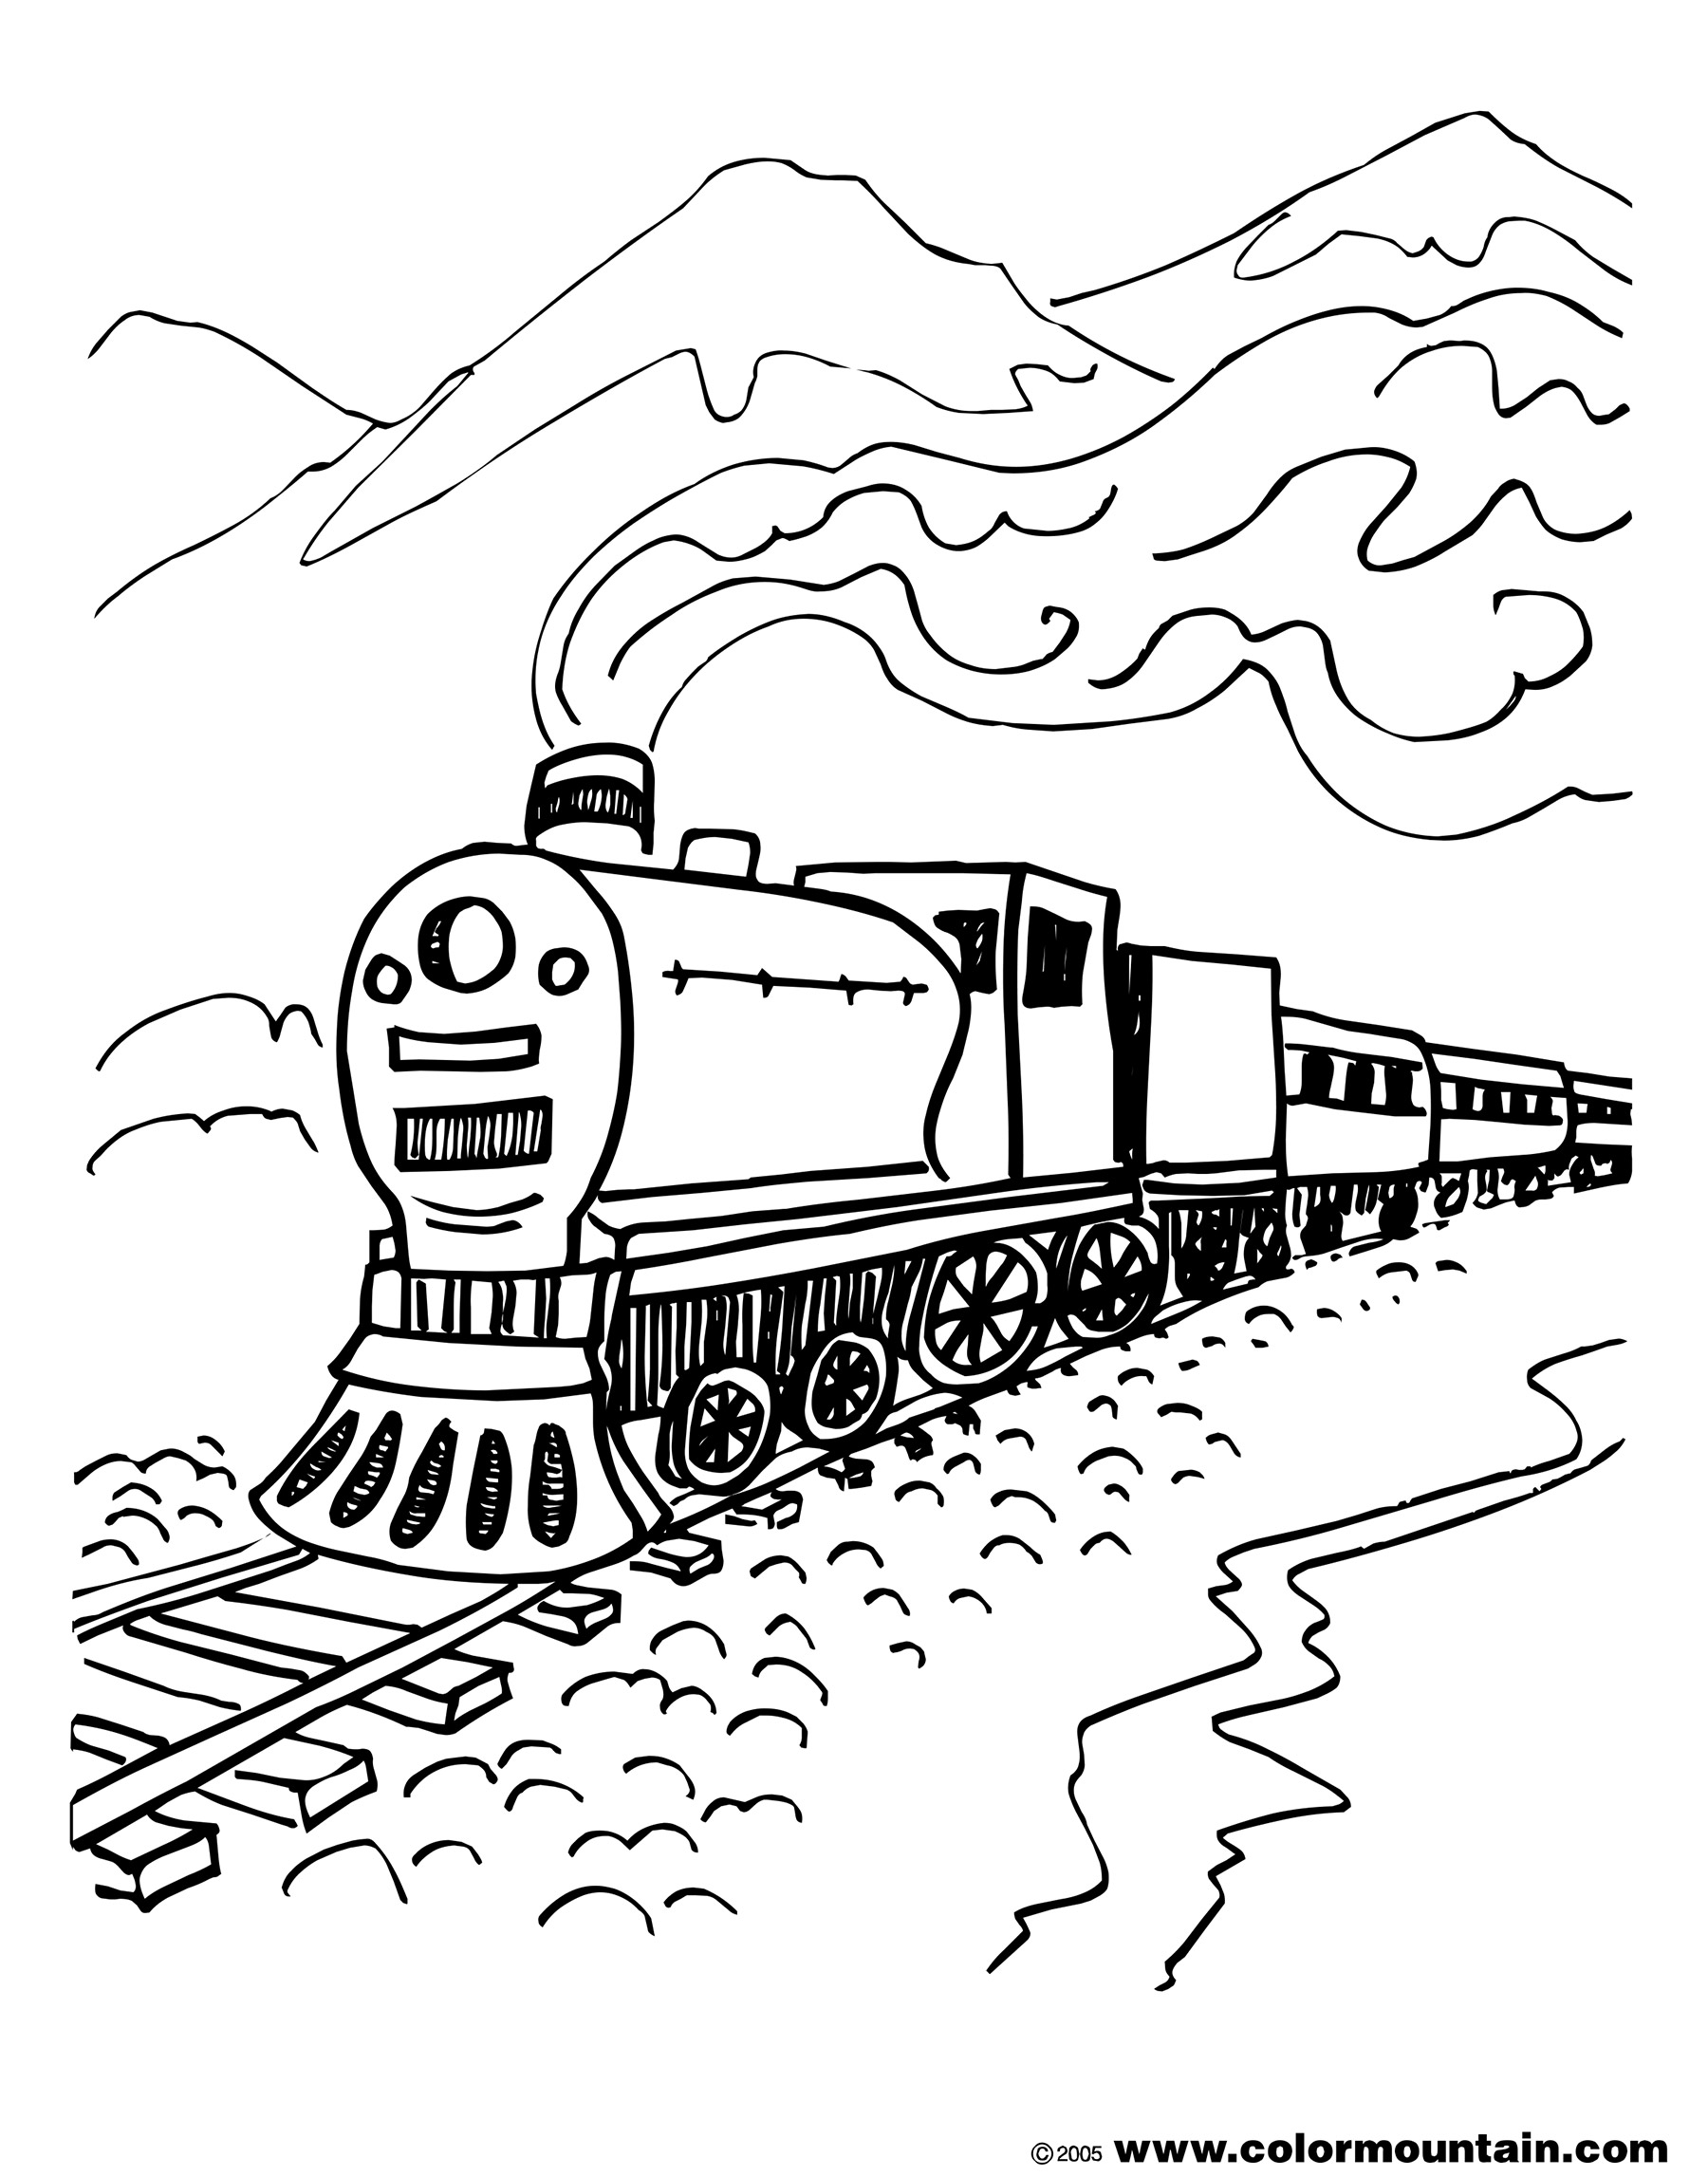 printable steam train coloring pages locomotive steam engine train coloring page printable for steam coloring train pages printable